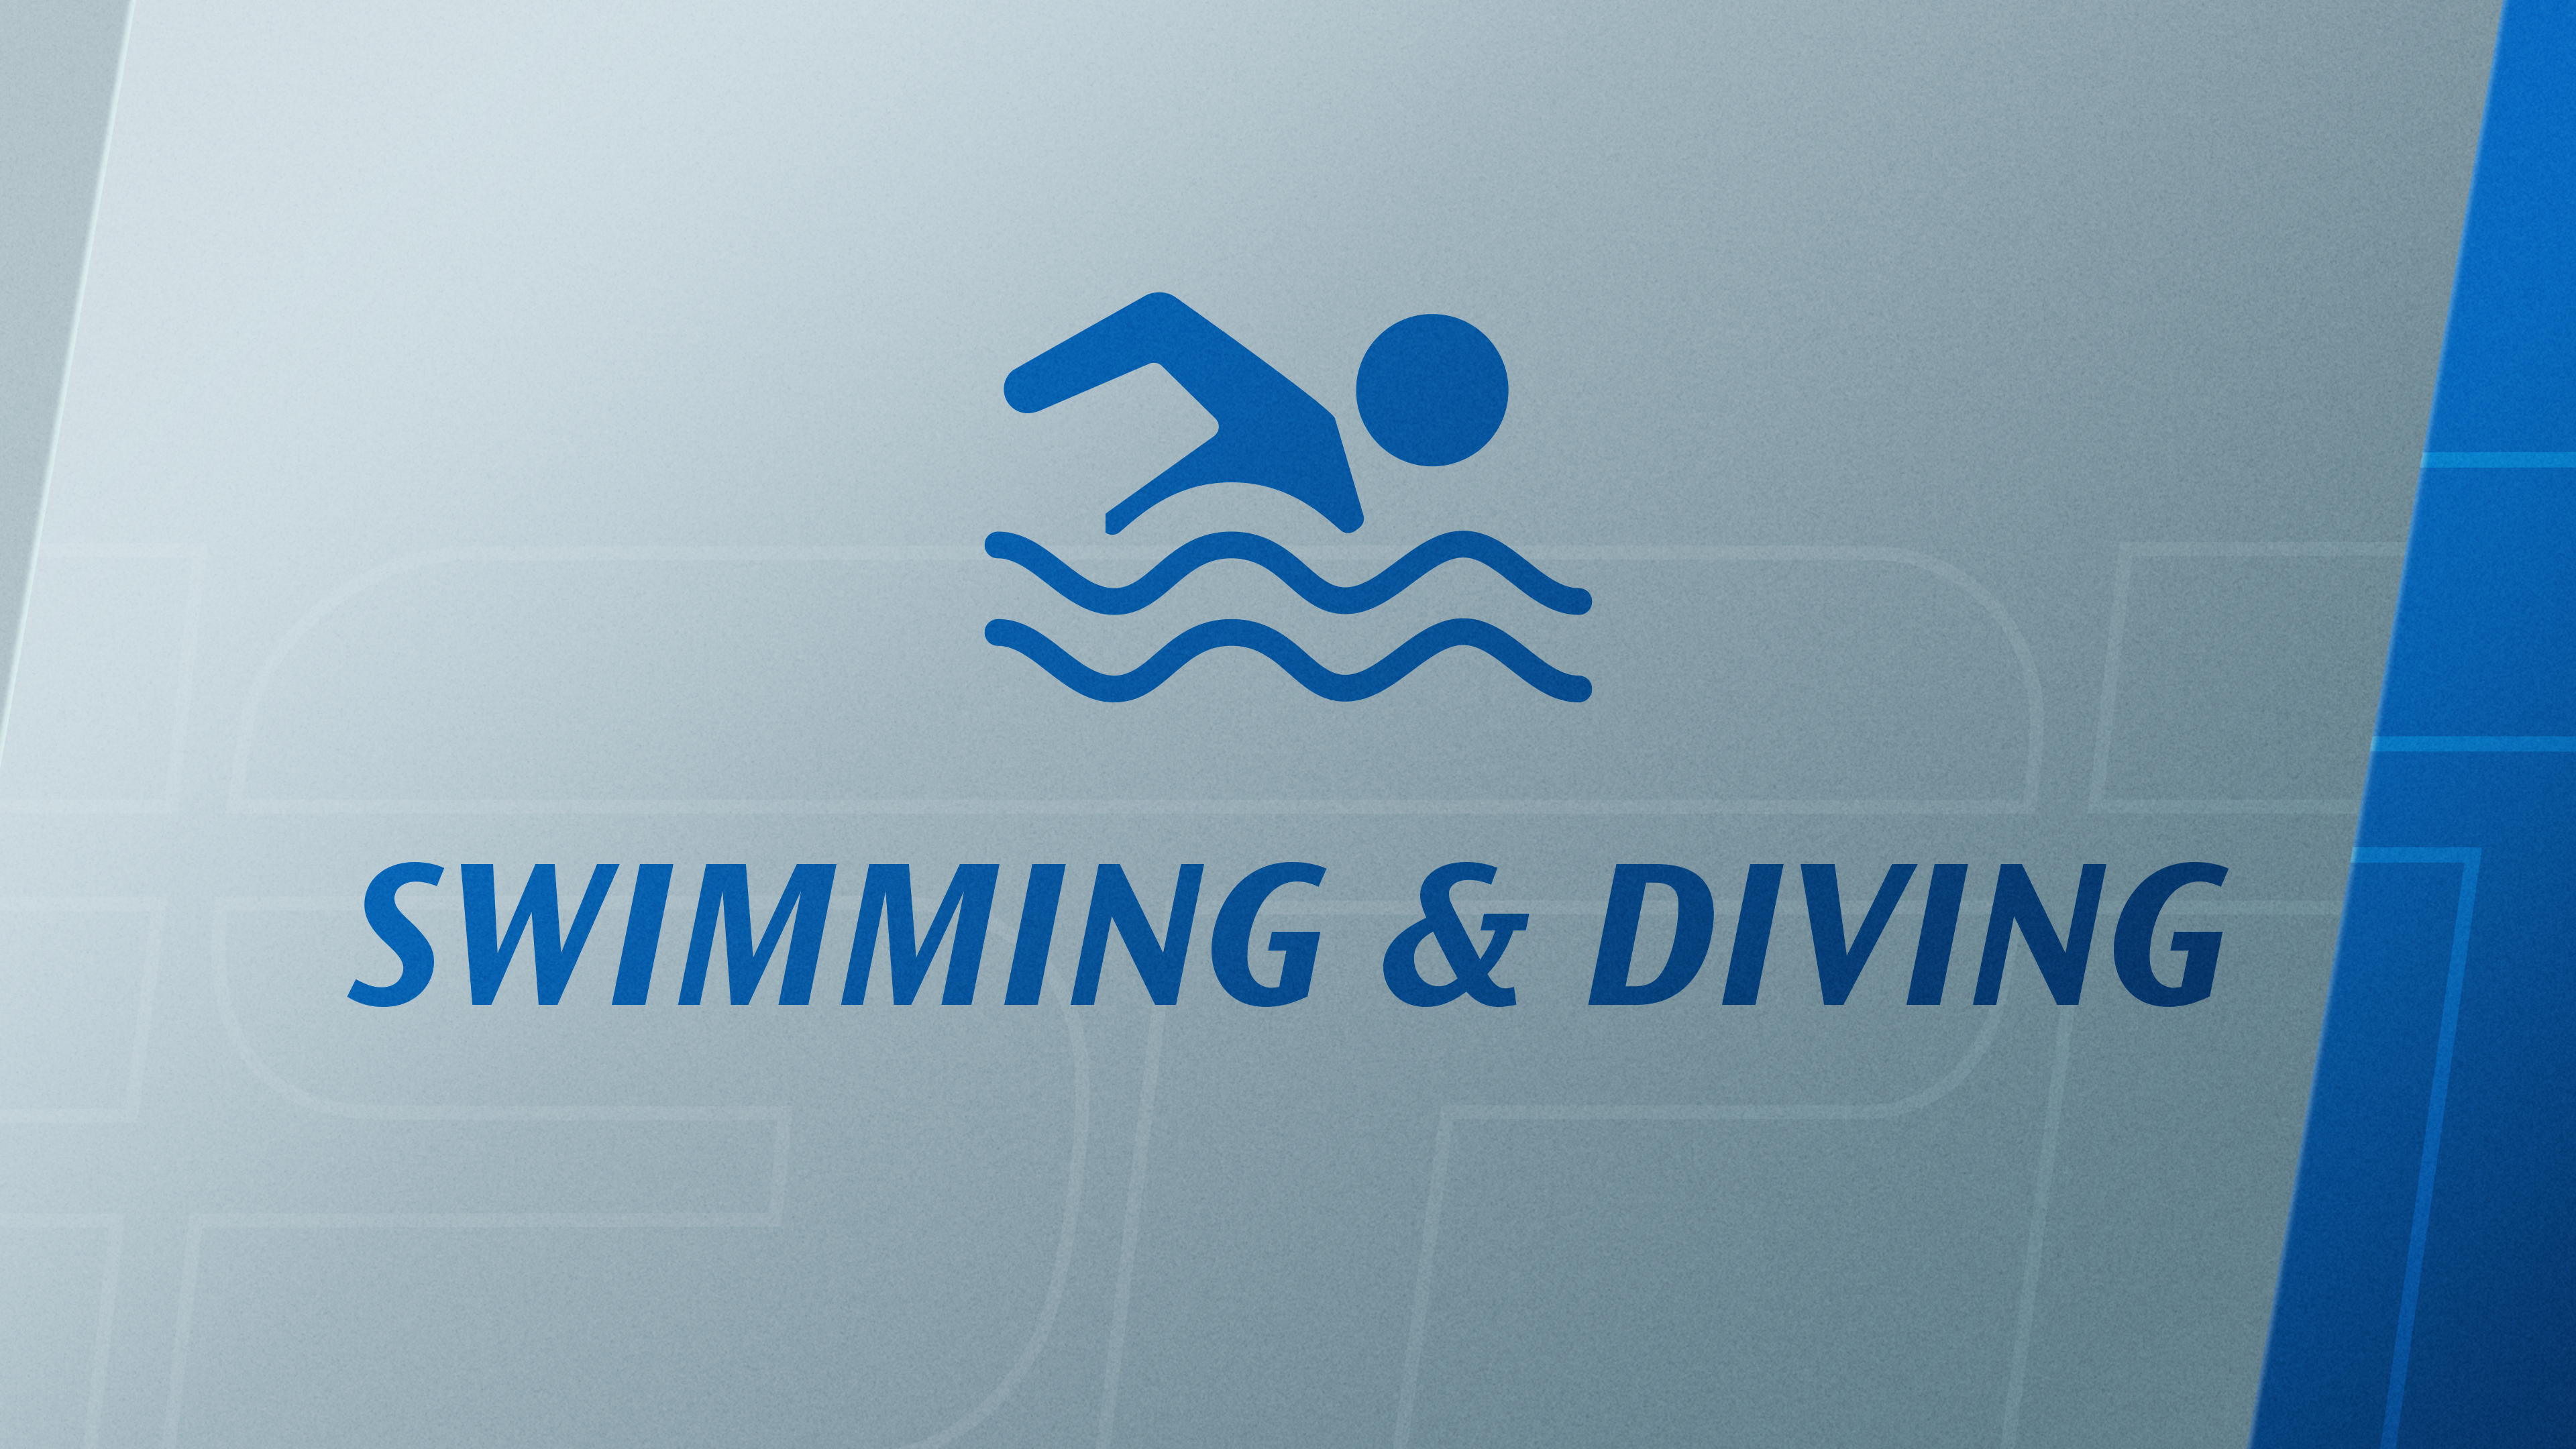 Miami, SCAD, FGCU, and Georgia Tech (Swimming & Diving)